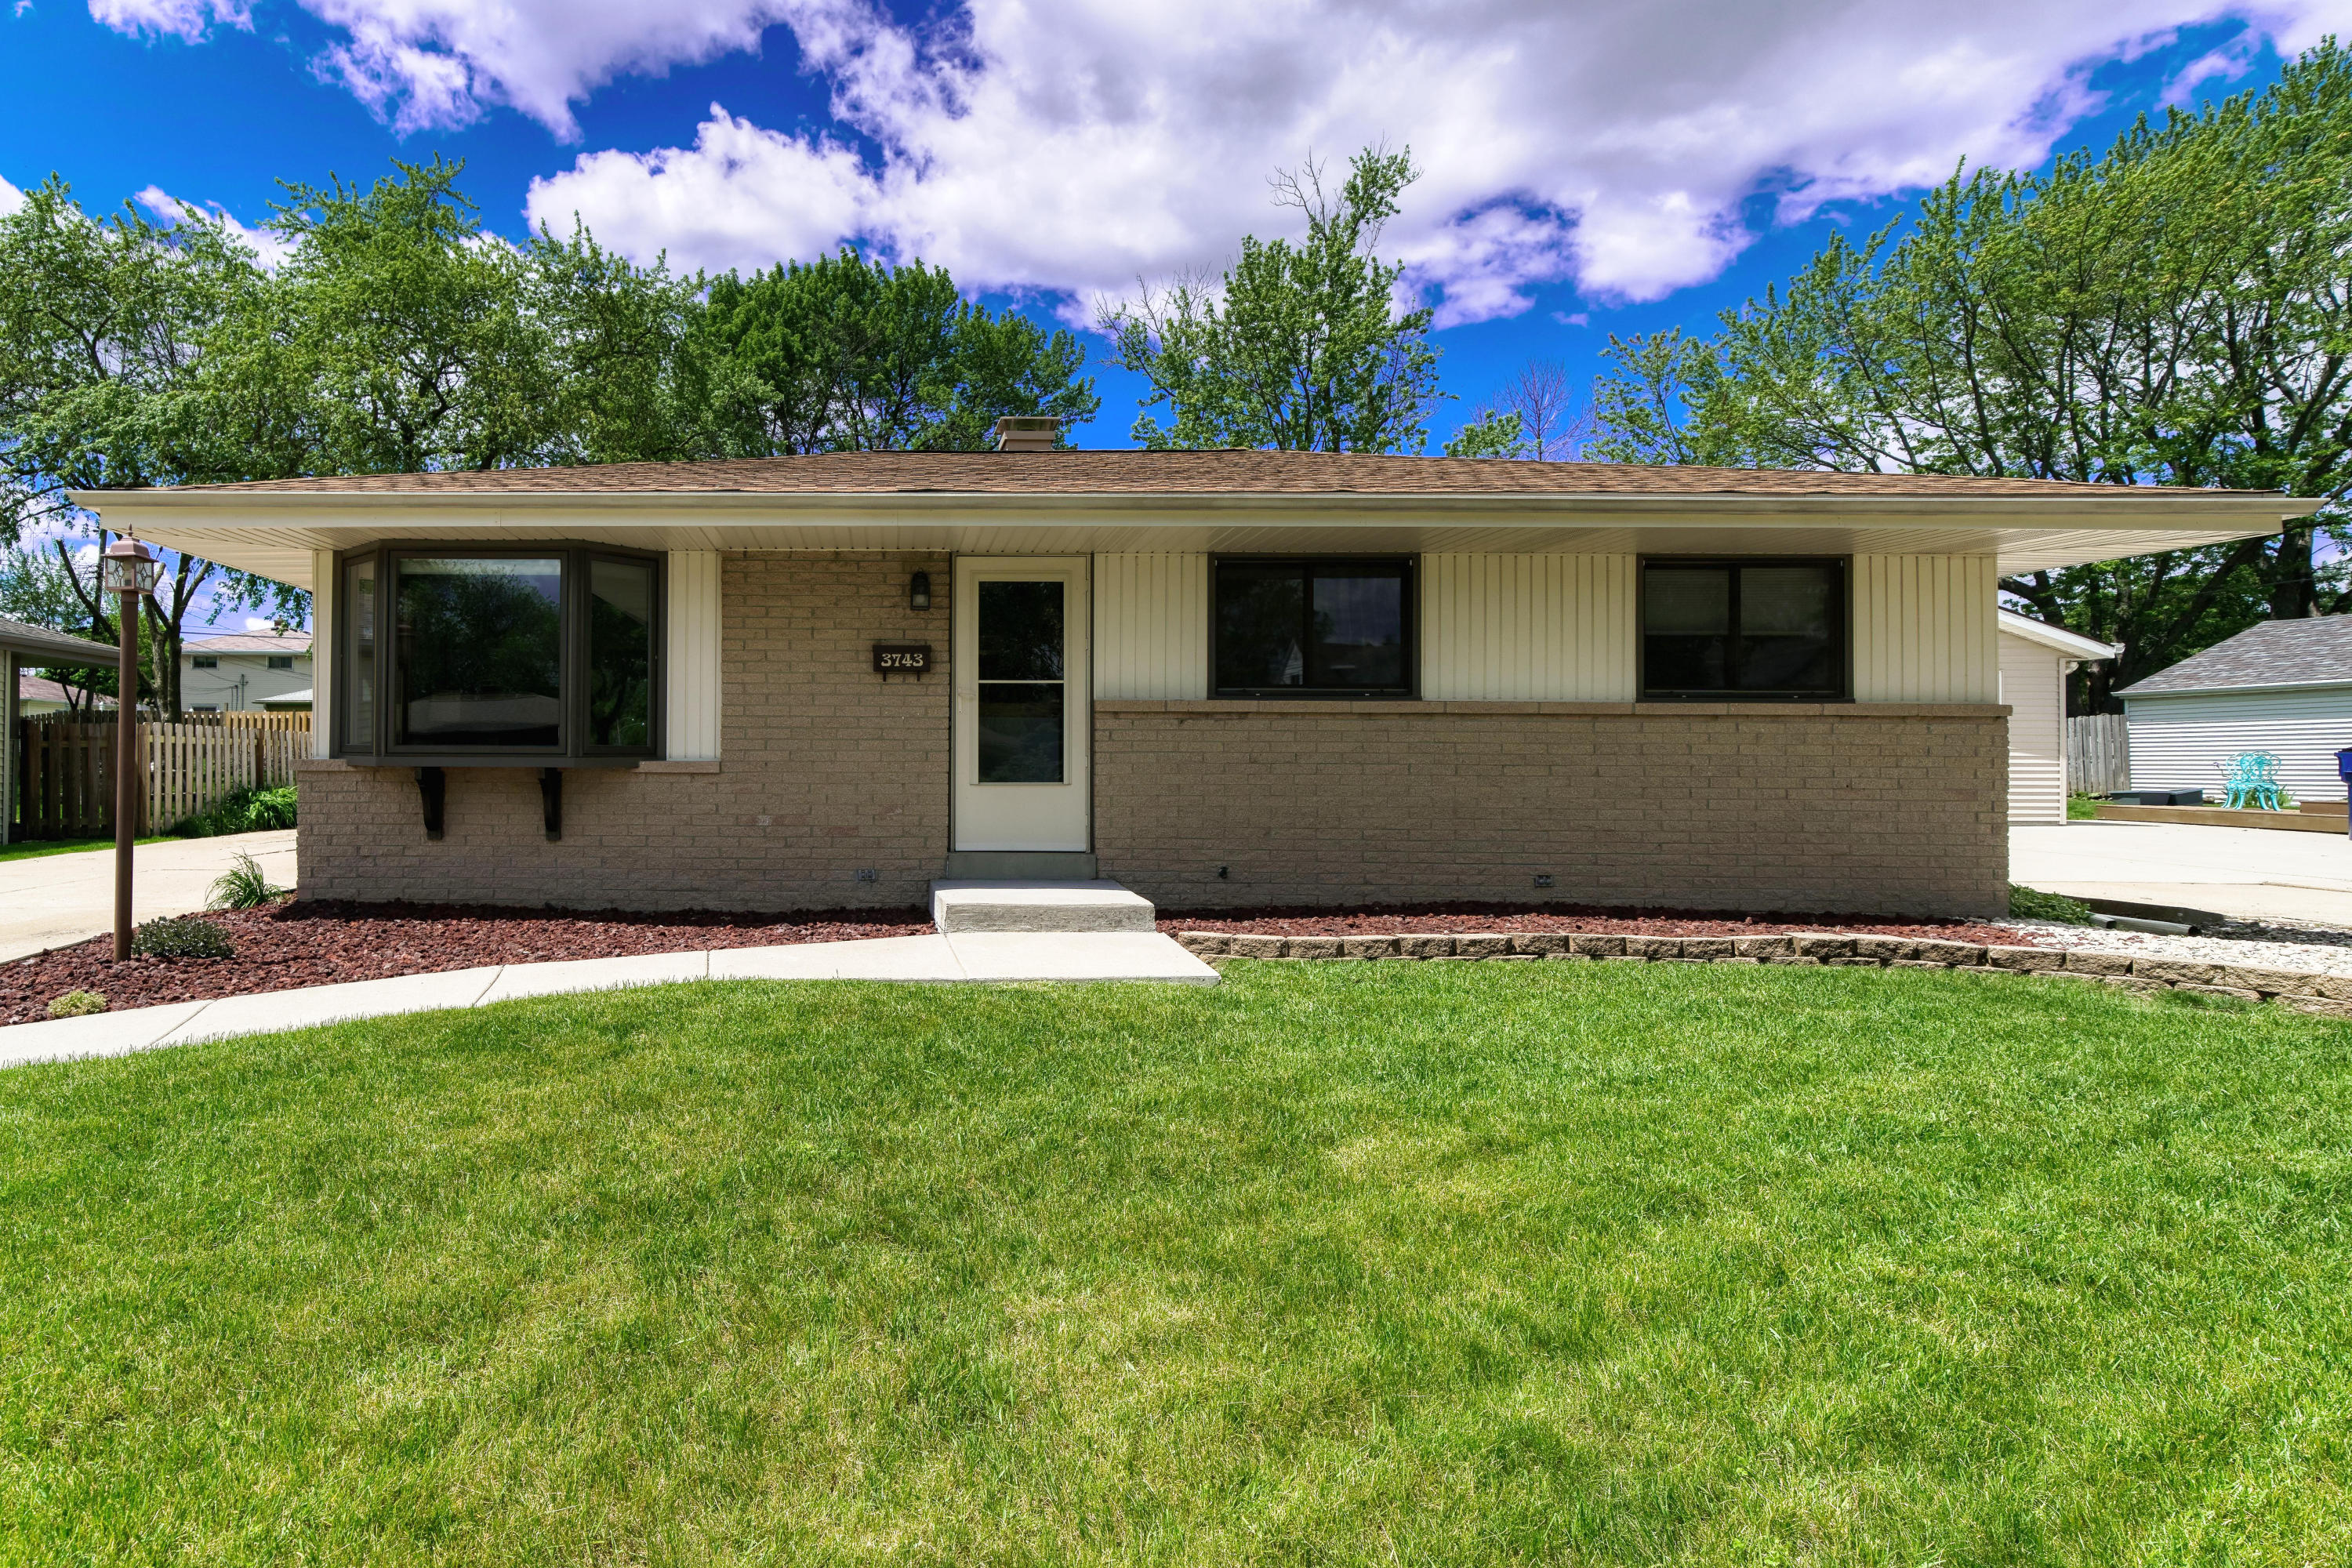 3743 86th St, Milwaukee, Wisconsin 53228, 3 Bedrooms Bedrooms, 5 Rooms Rooms,1 BathroomBathrooms,Single-Family,For Sale,86th St,1691338